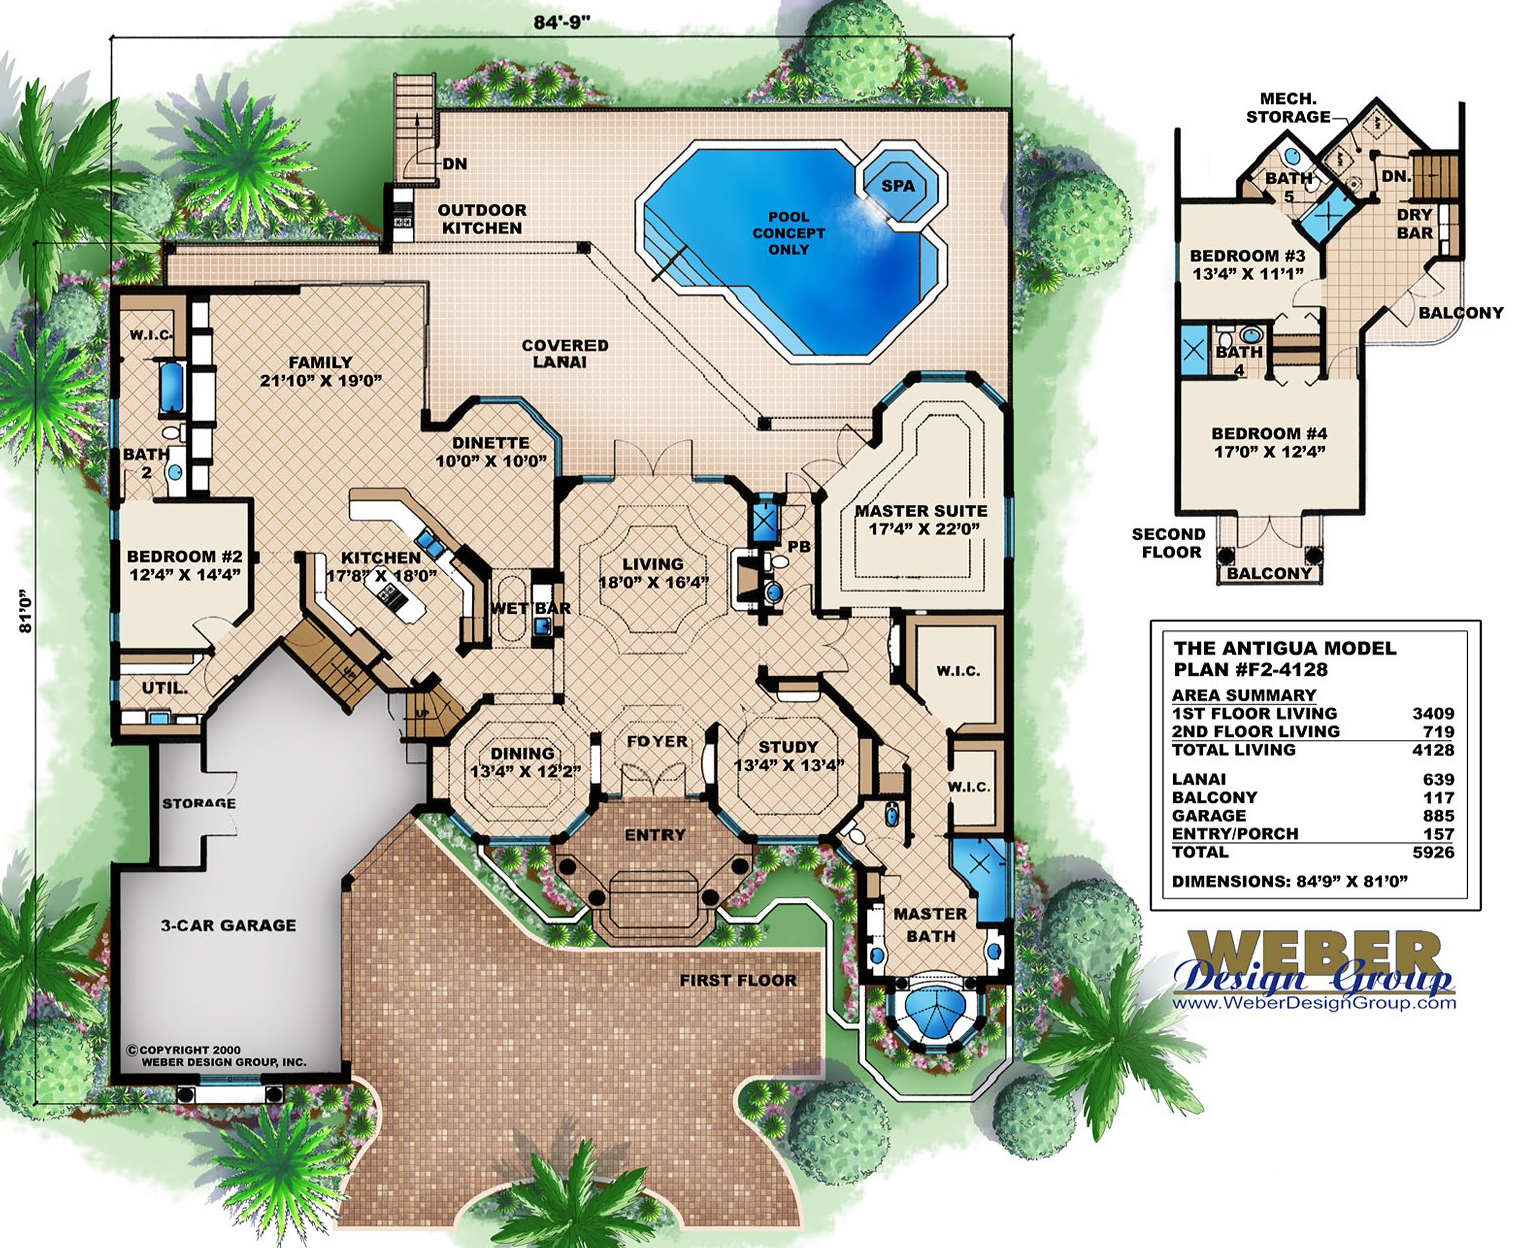 Mediterranean House Plans Luxury Mediterranean Style Home Floor Plans Pool House Plans Mediterranean Floor Plans Mediterranean House Plan